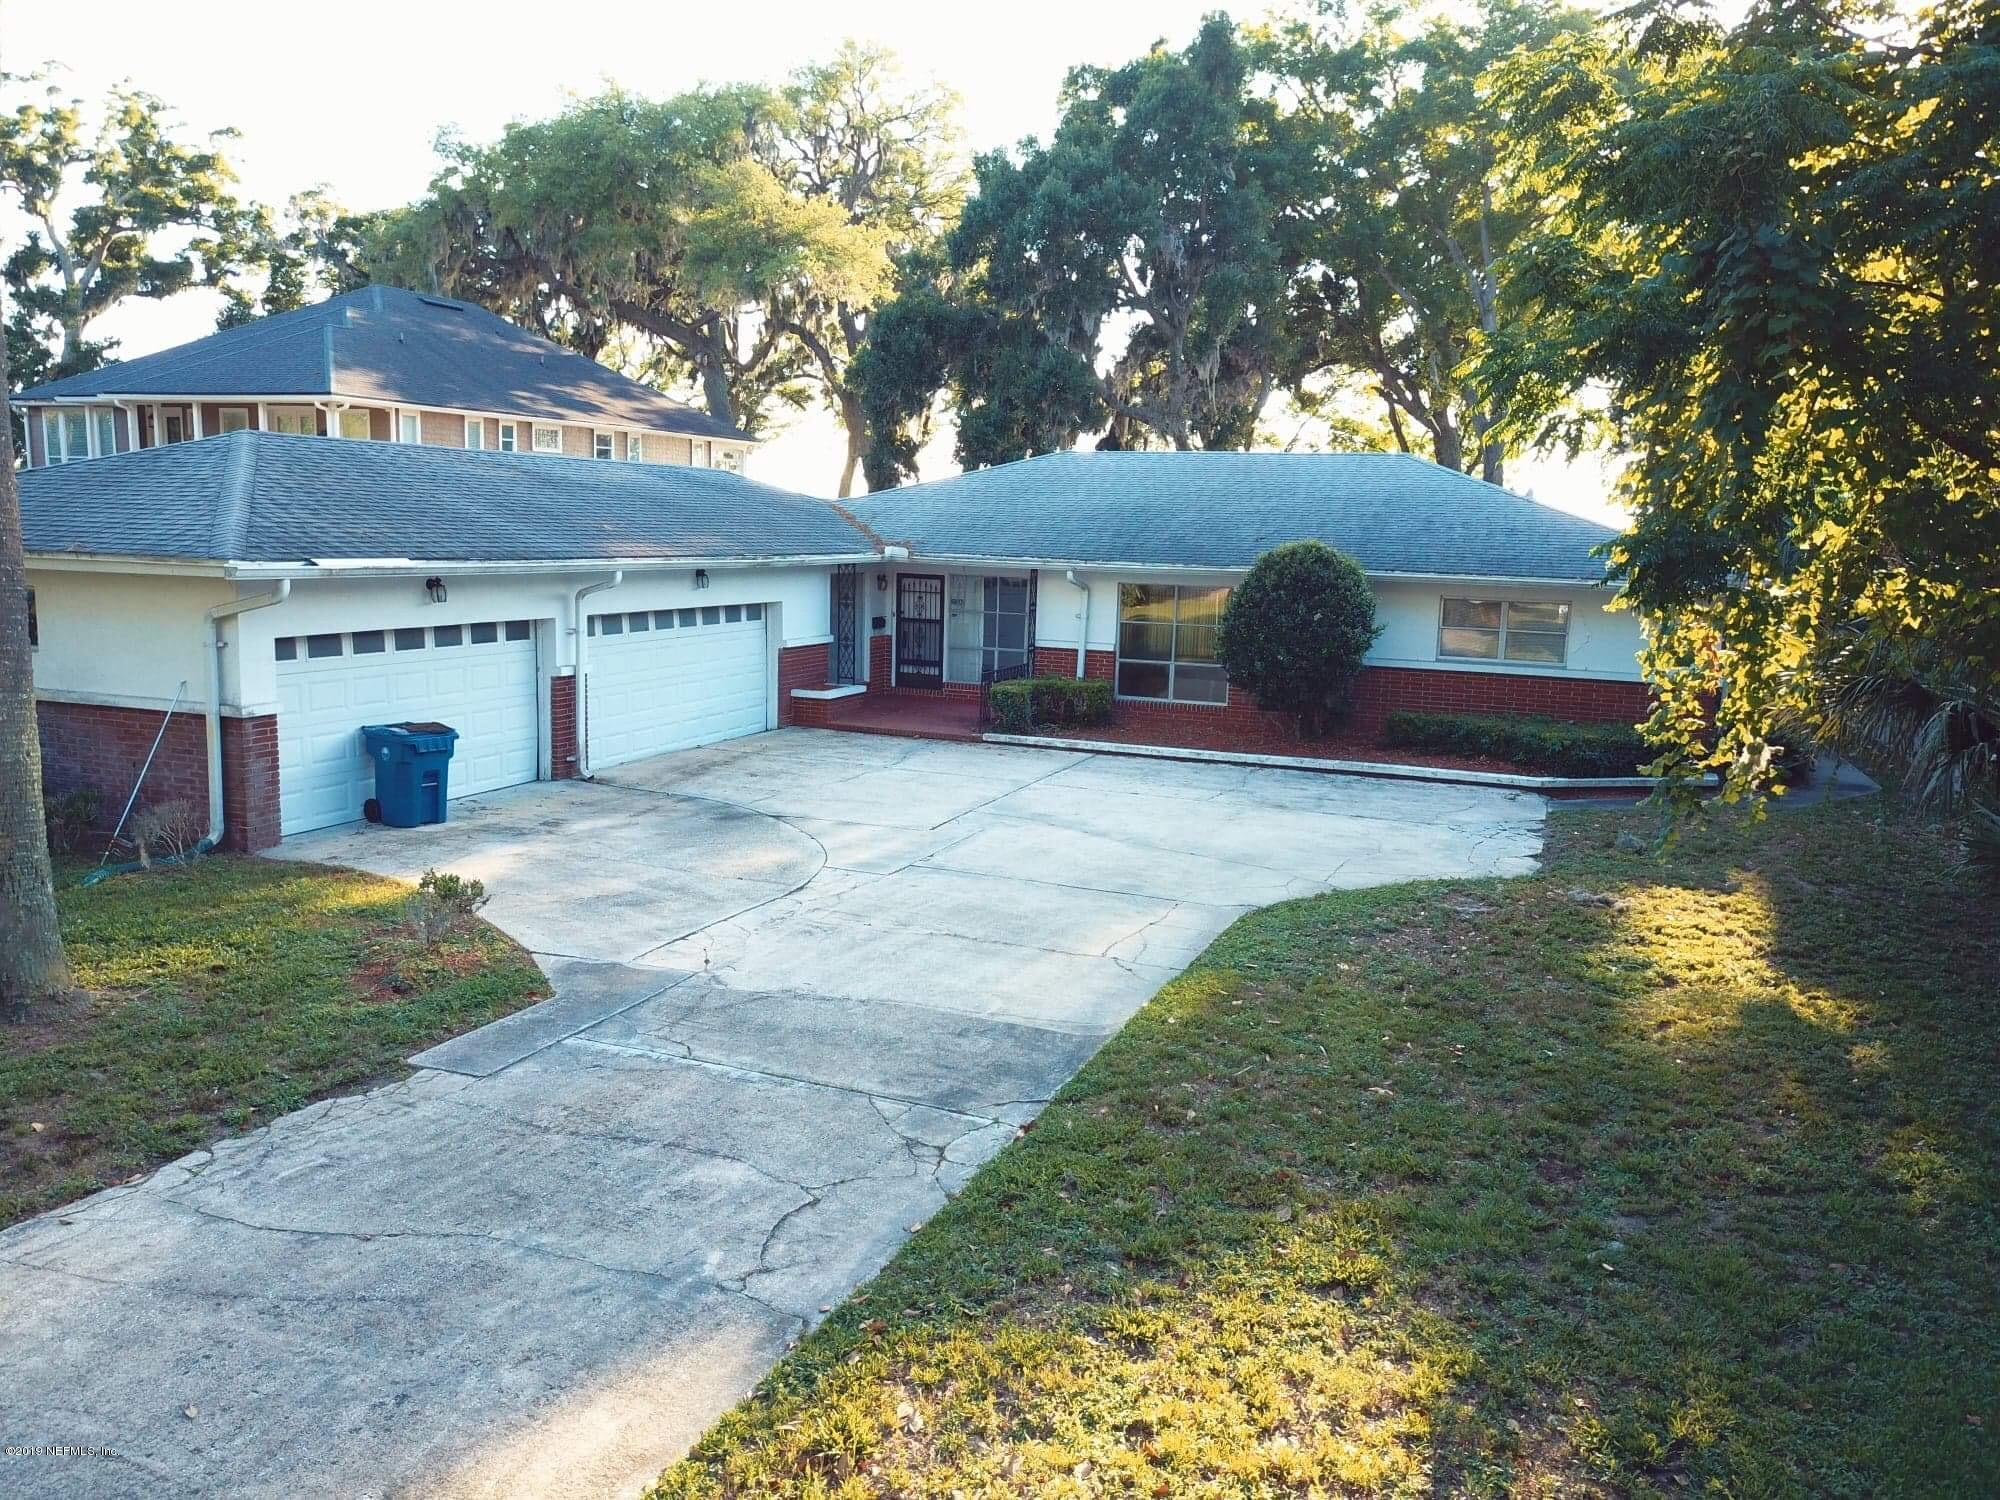 1500 RIVER BLUFF, JACKSONVILLE, FLORIDA 32211, 3 Bedrooms Bedrooms, ,2 BathroomsBathrooms,Residential - single family,For sale,RIVER BLUFF,978859